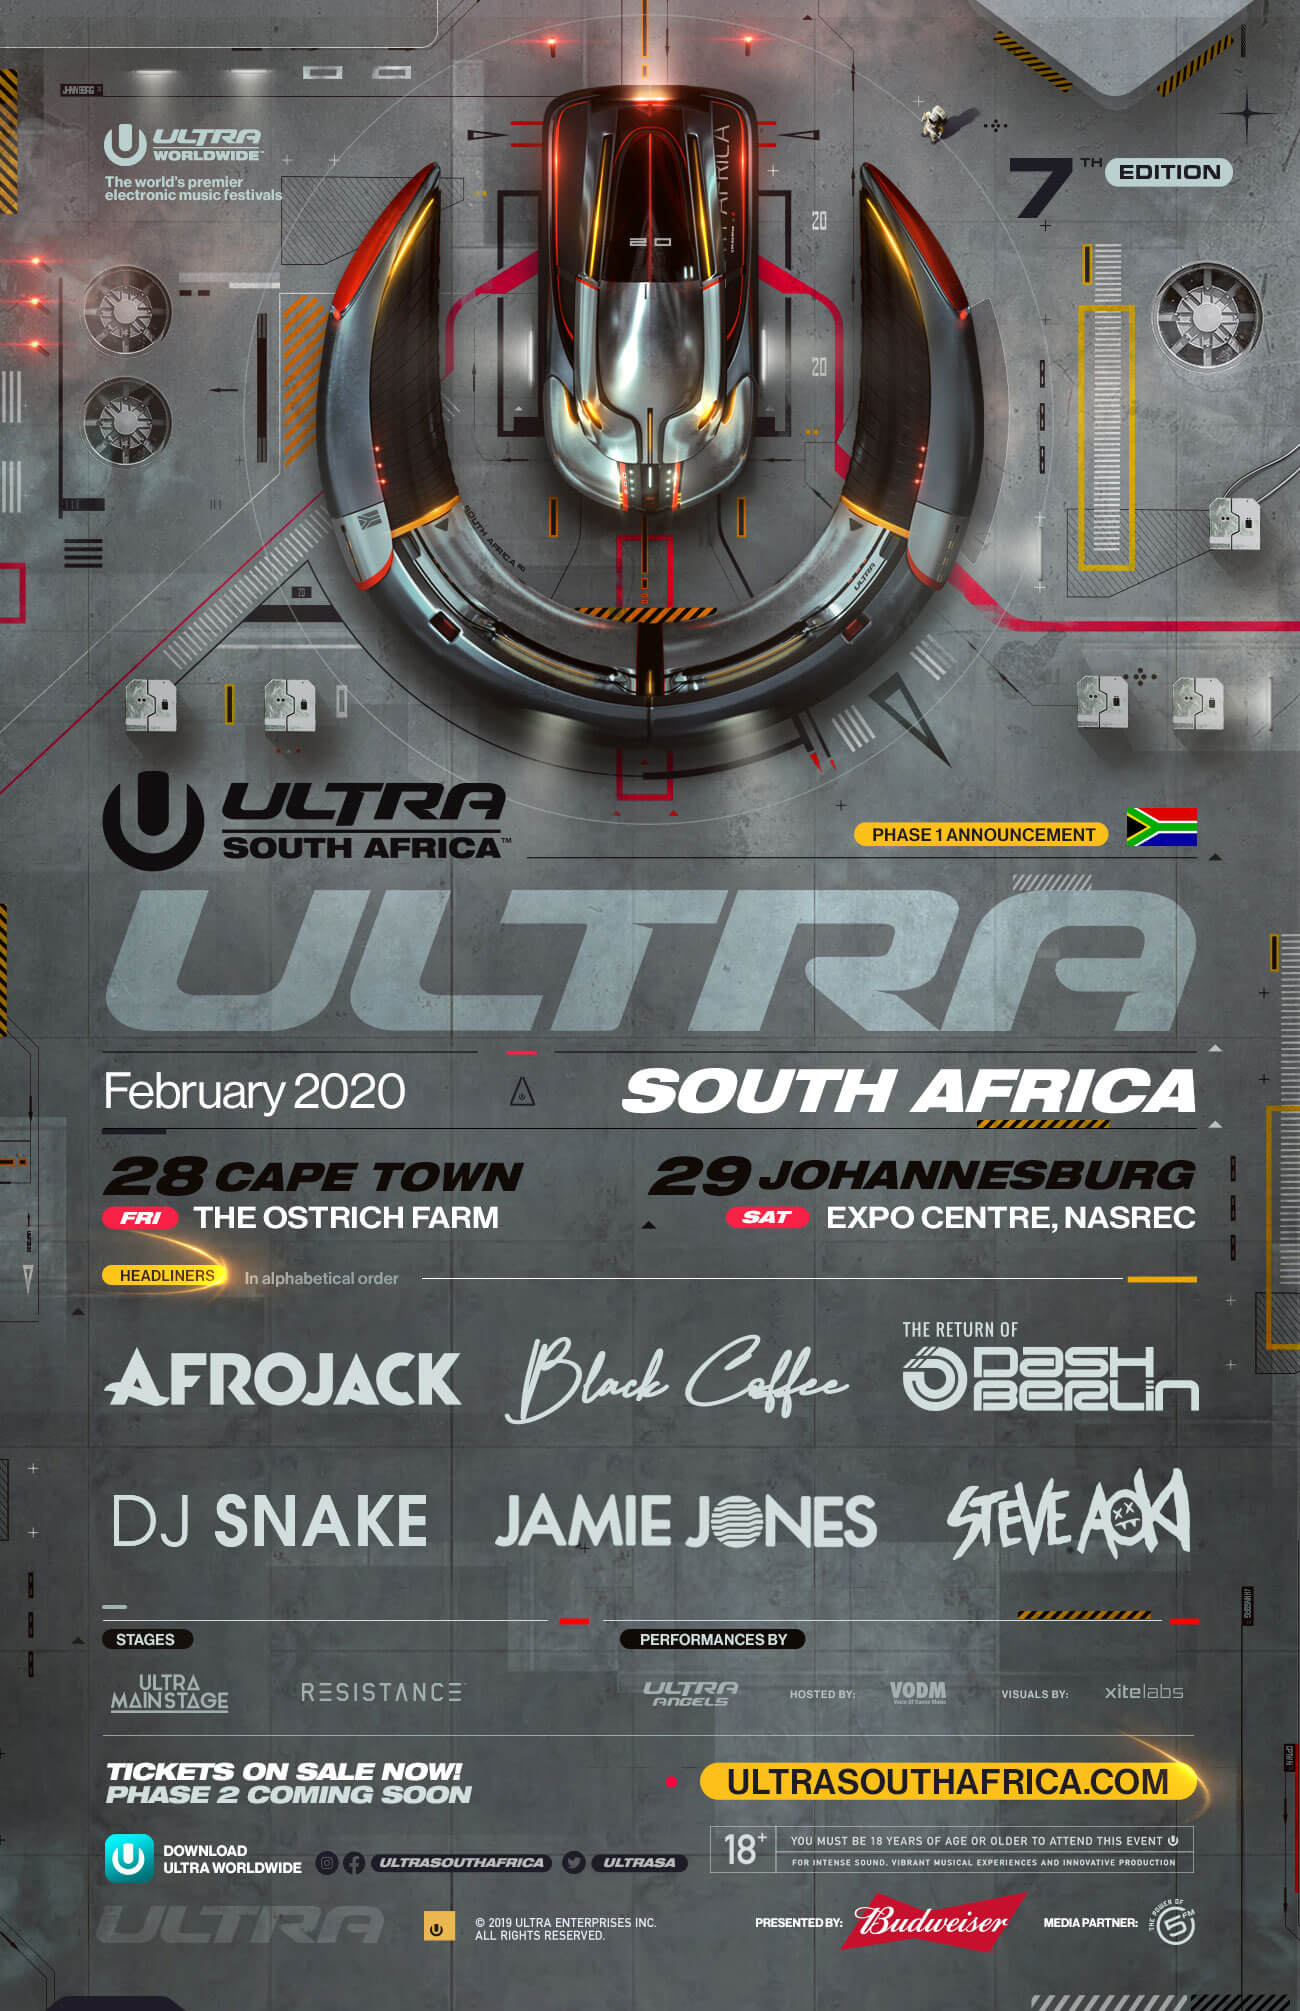 ULTRA South Africa Reveals Phase 1 Lineup